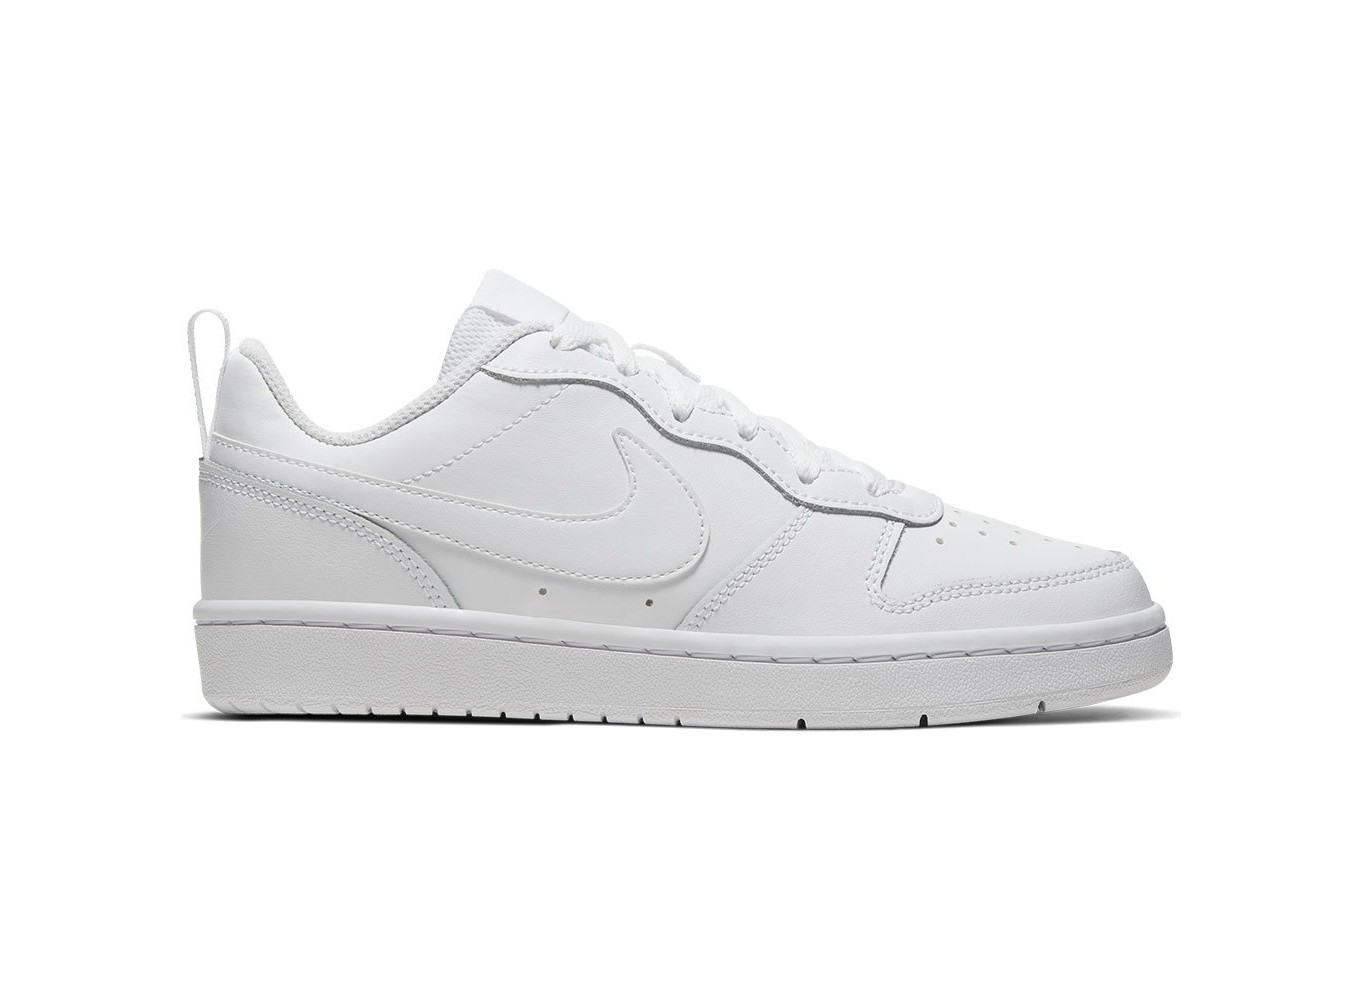 ZAPATILLAS NIKE COURT BOROUGH LOW 2 MUJER